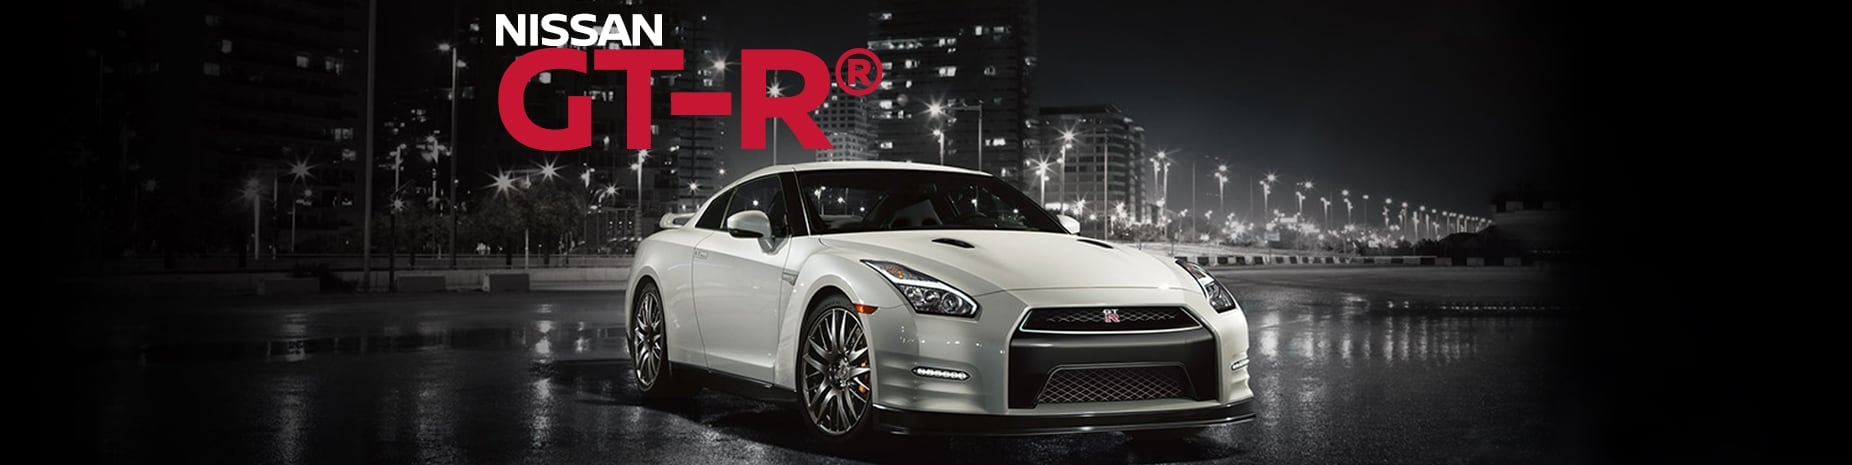 Nissan GT-R For Sale | Nissan GTR Info Pricing & More